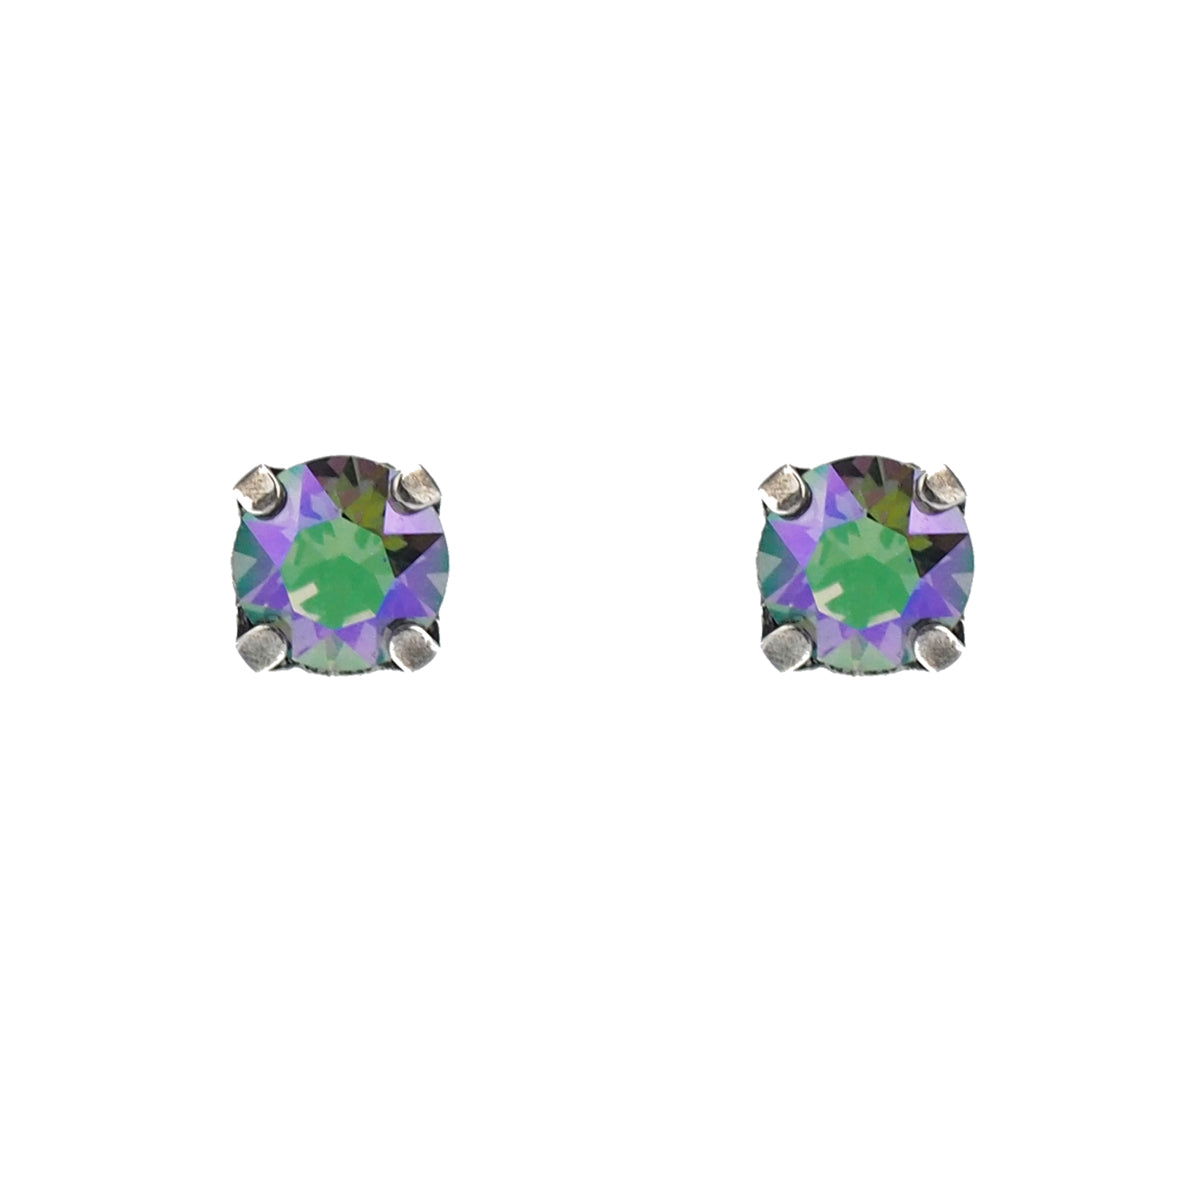 Bliss Studs small - Paradise Shine